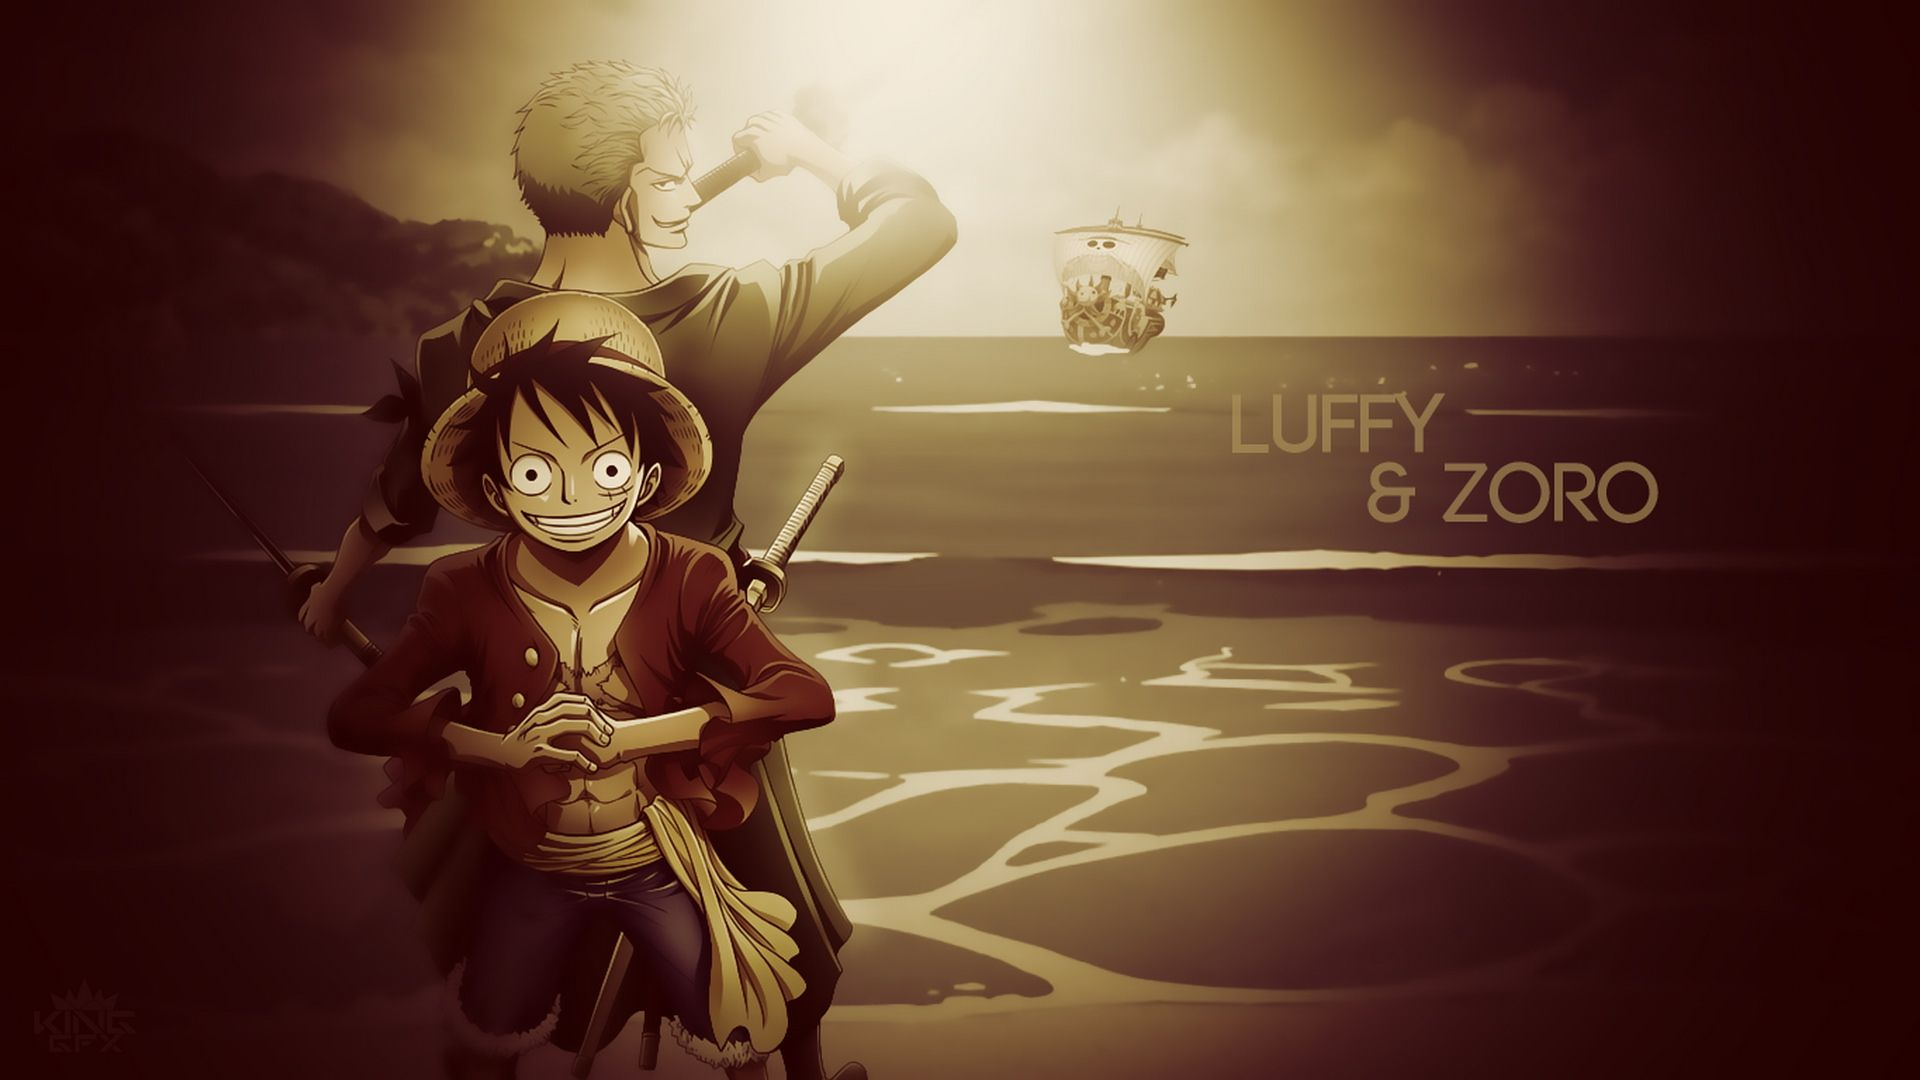 One Piece Luffy And Zoro After 2 Years Wallpaper Anime Images